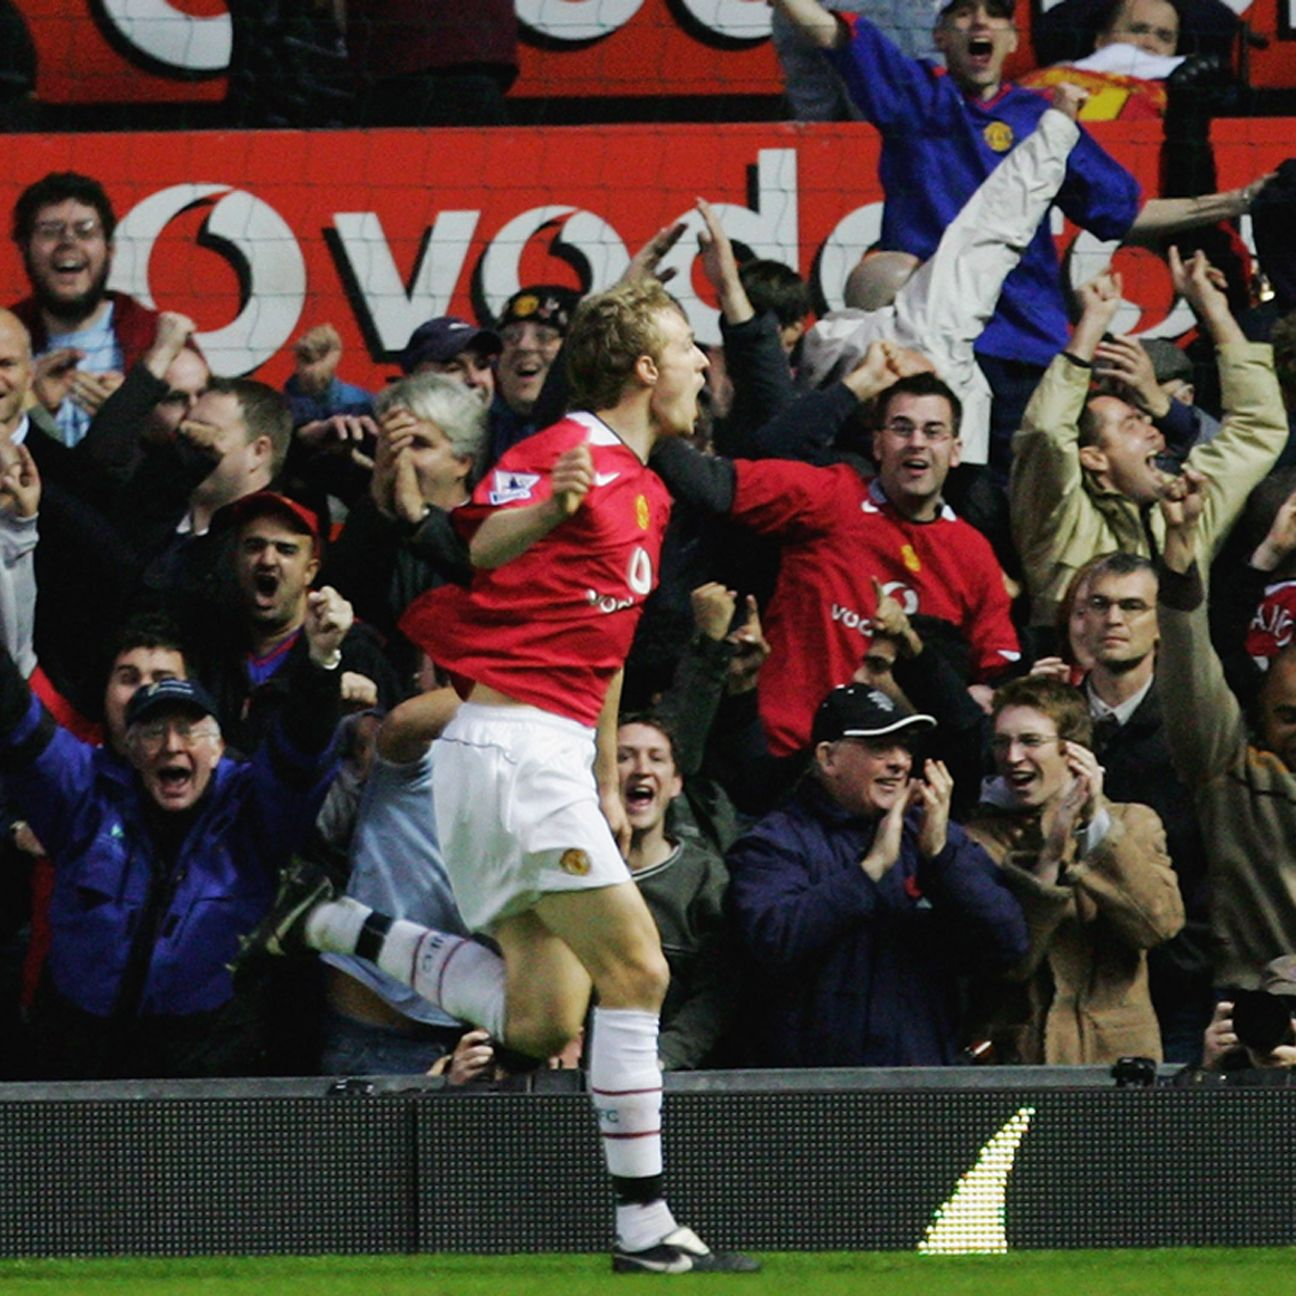 This Sunday, United fans will be hoping for a repeat of 2005, when Darren Fletcher's goal shocked Chelsea and lifted Sir Alex Ferguson's side to a 1-0 victory.